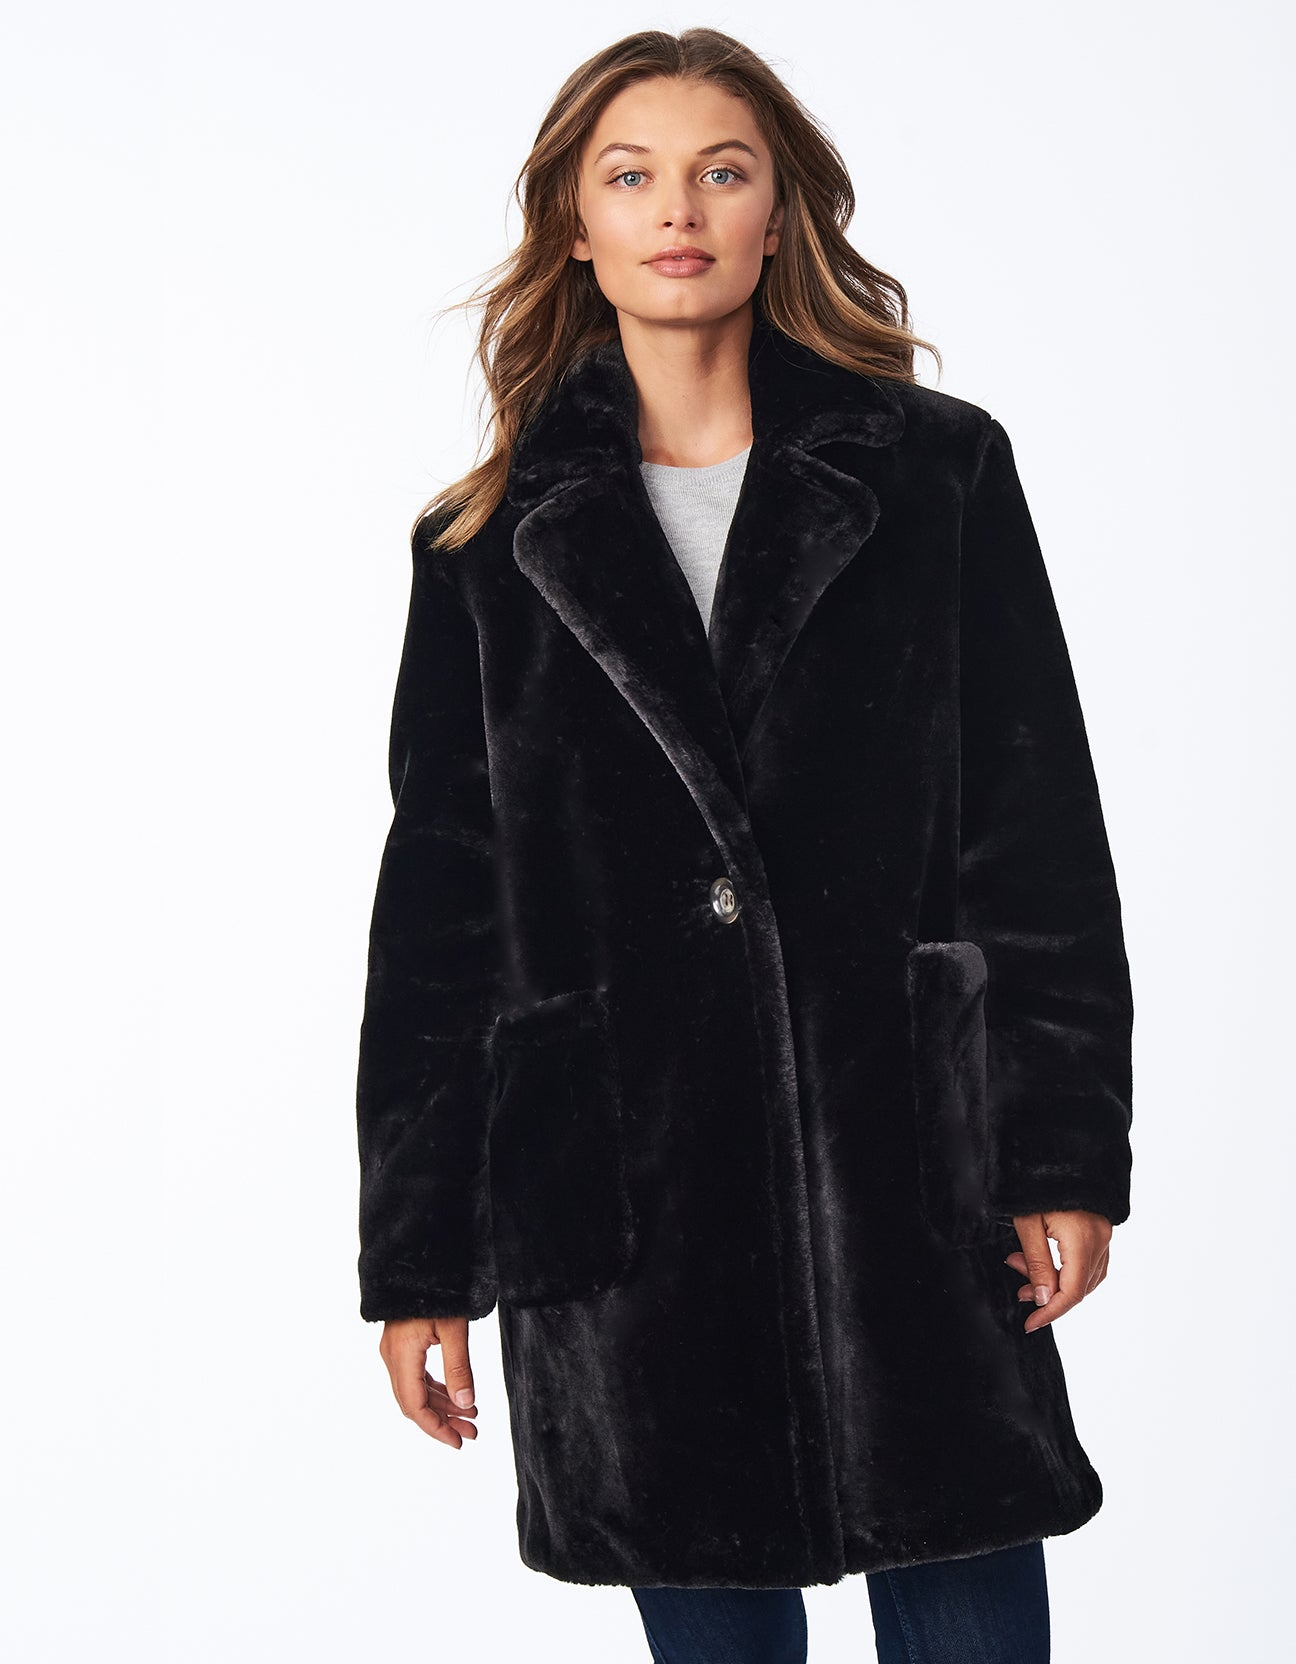 Faux Fur Notched Lapel Coat